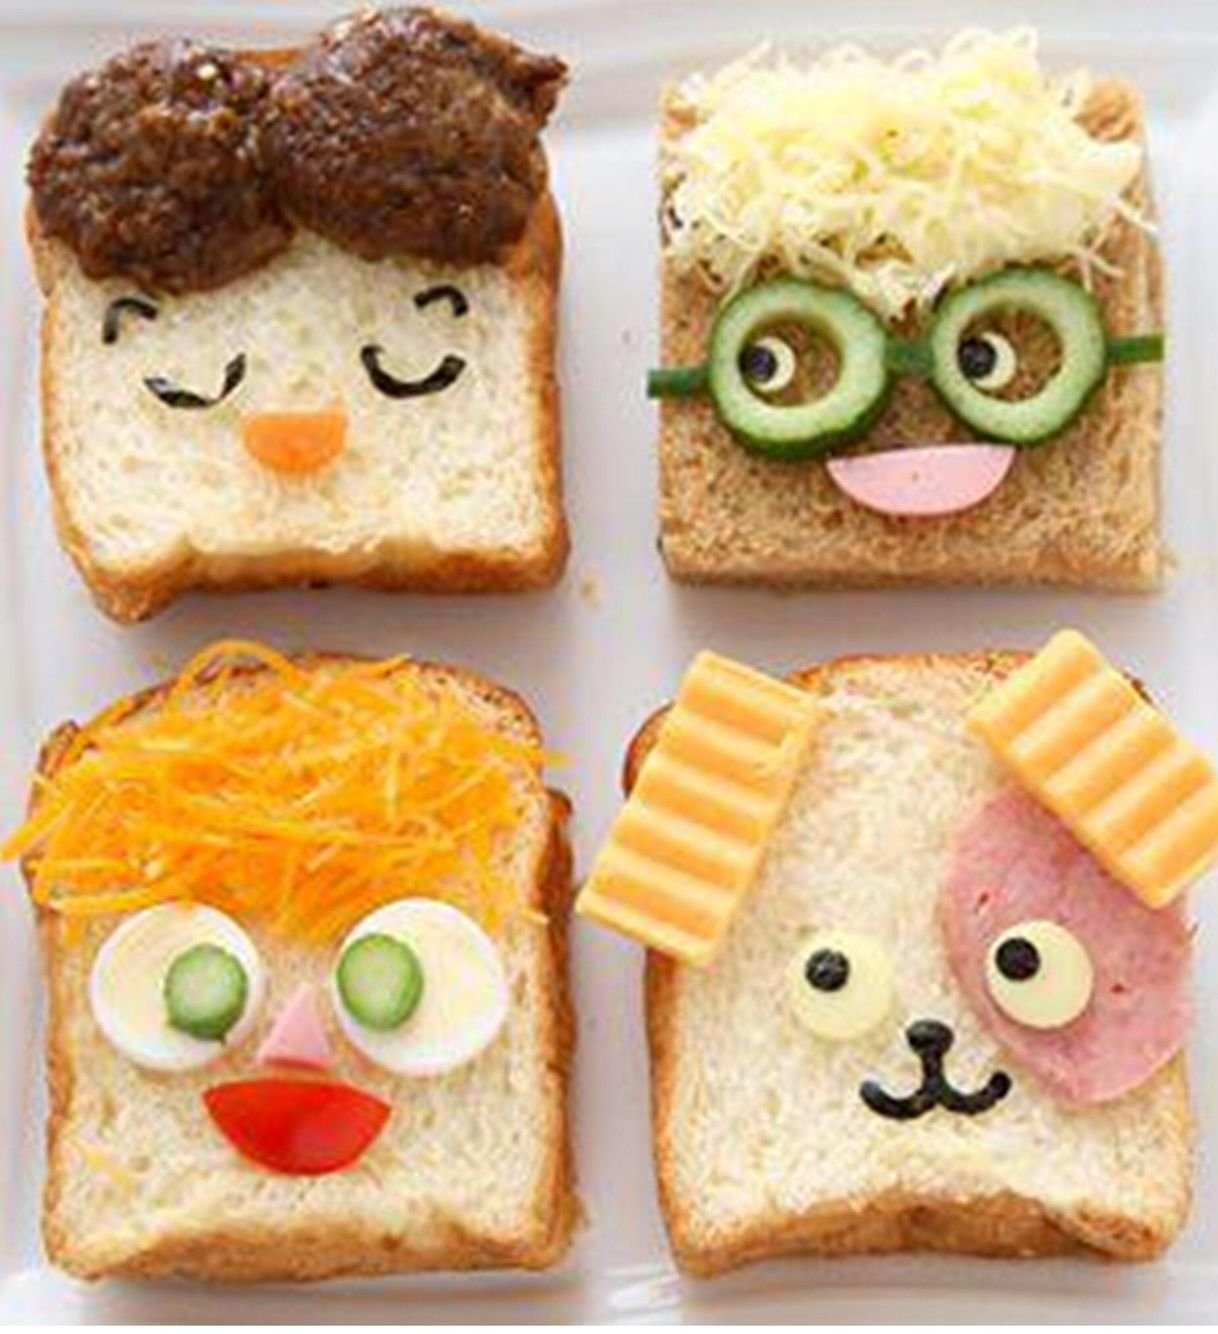 10 Best Creative Food Ideas For Kids Pick A Sandwich That Catches Your Fancy Childrens